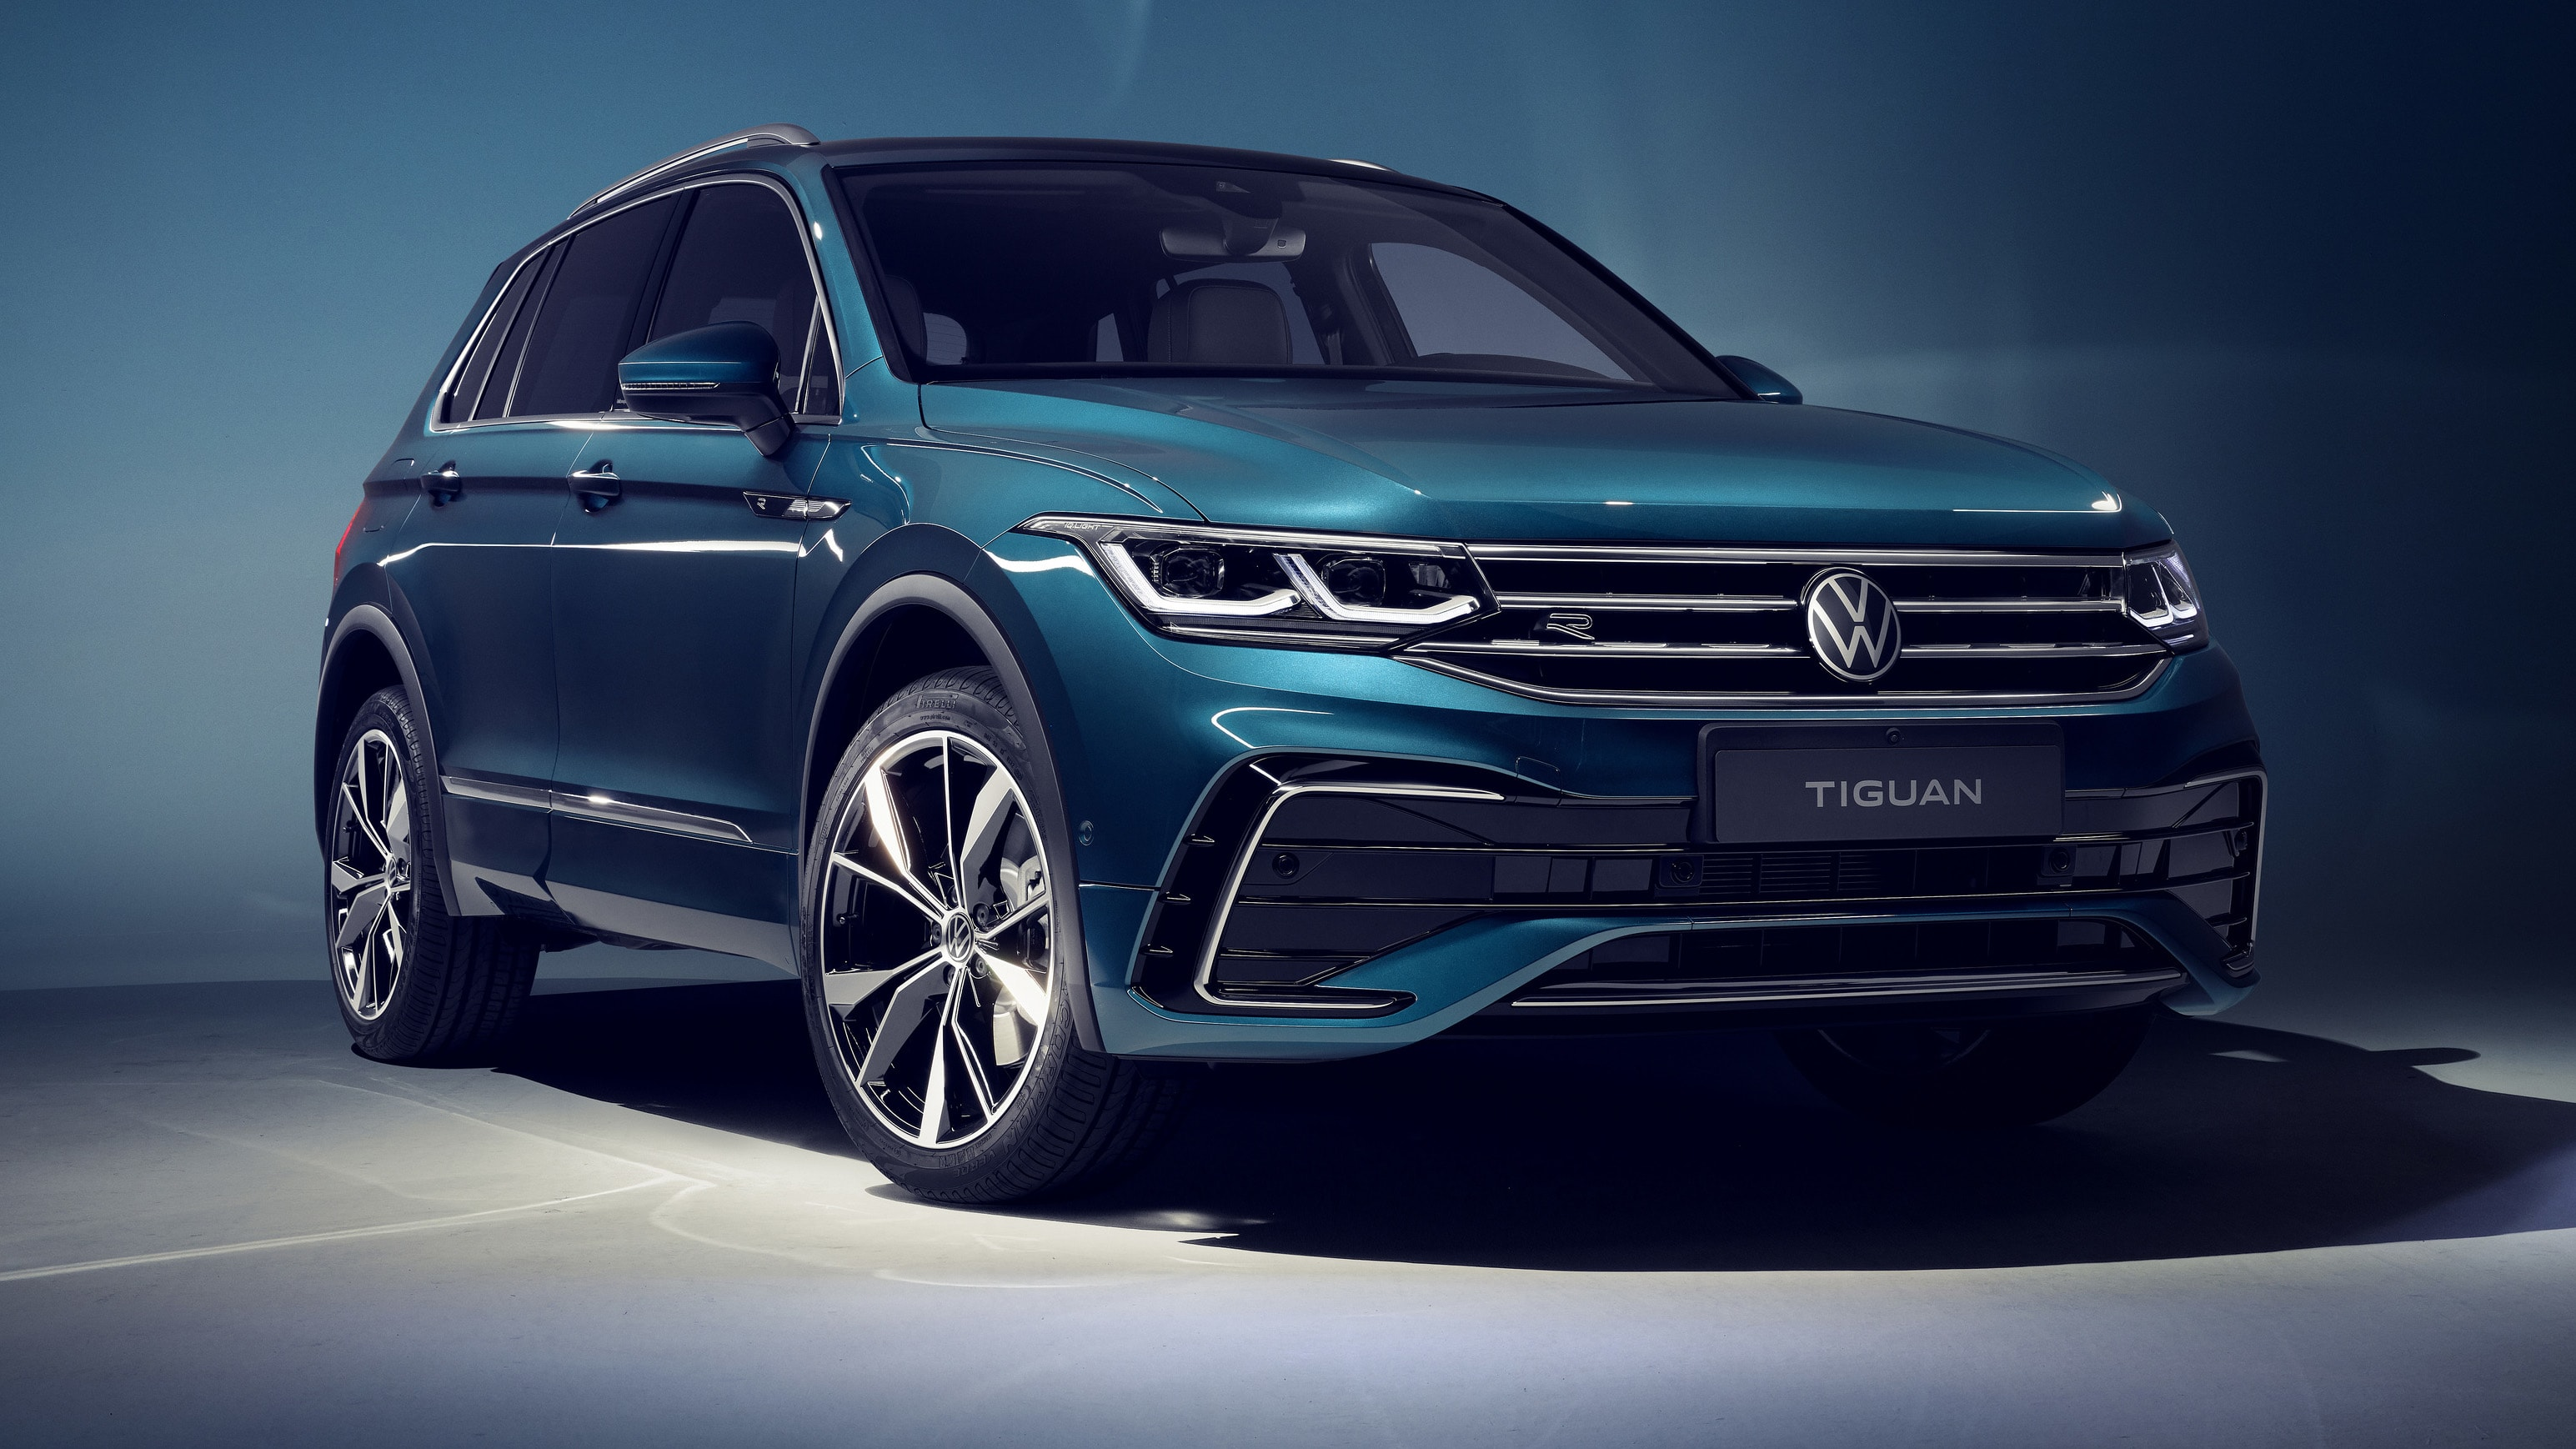 2021 Volkswagen Tiguan price and specs: Mid-size SUV hit ...